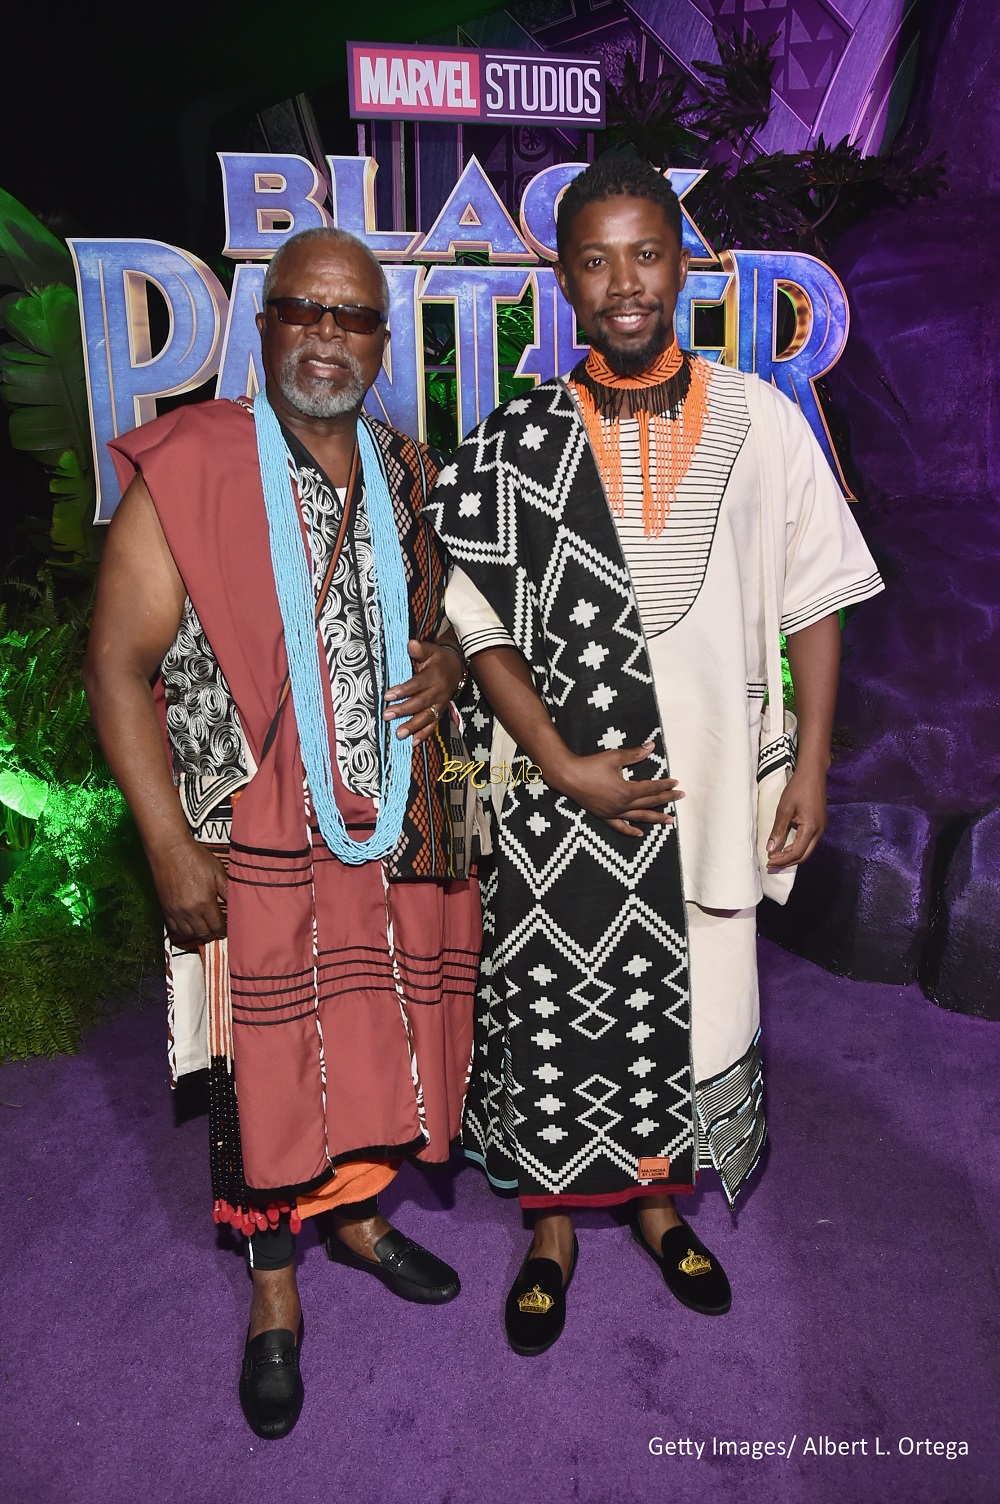 The African Cast Of Blackpanther Dress Up As Royalty For